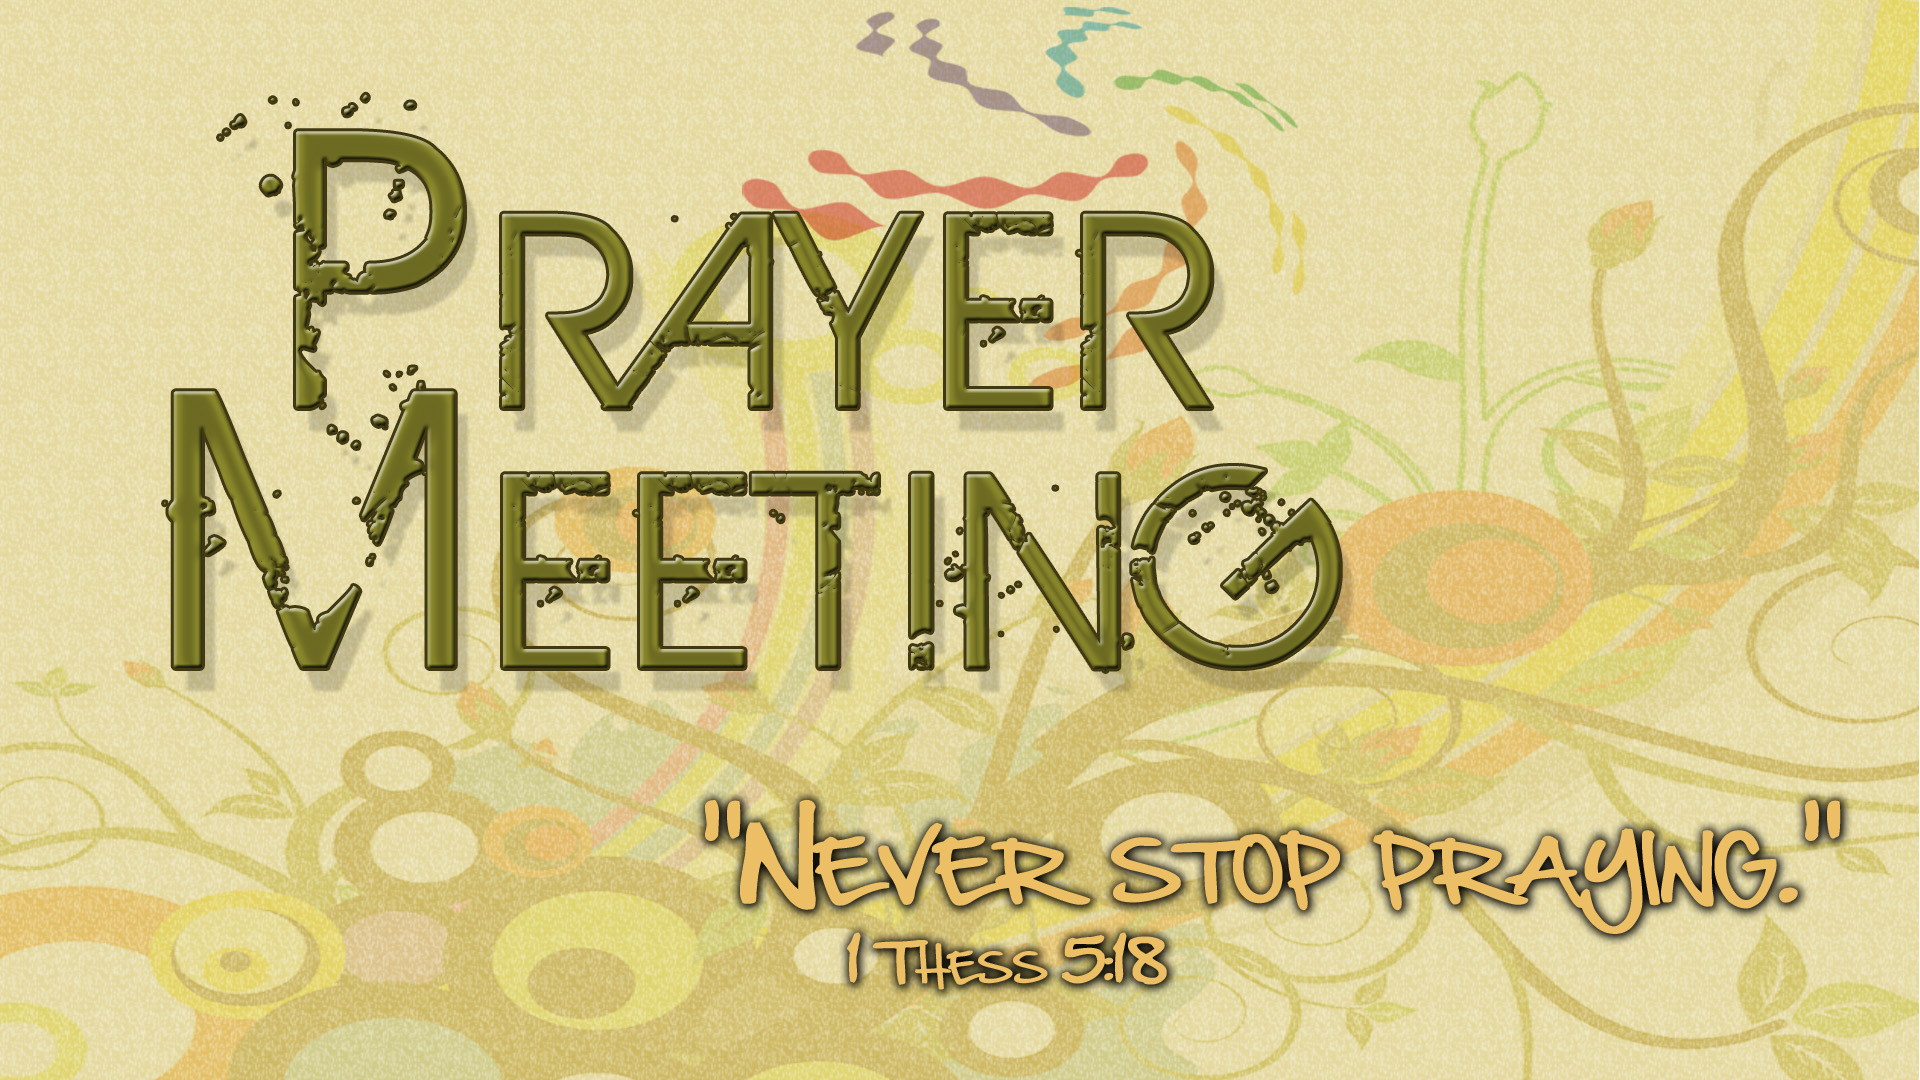 opinions on prayer meeting